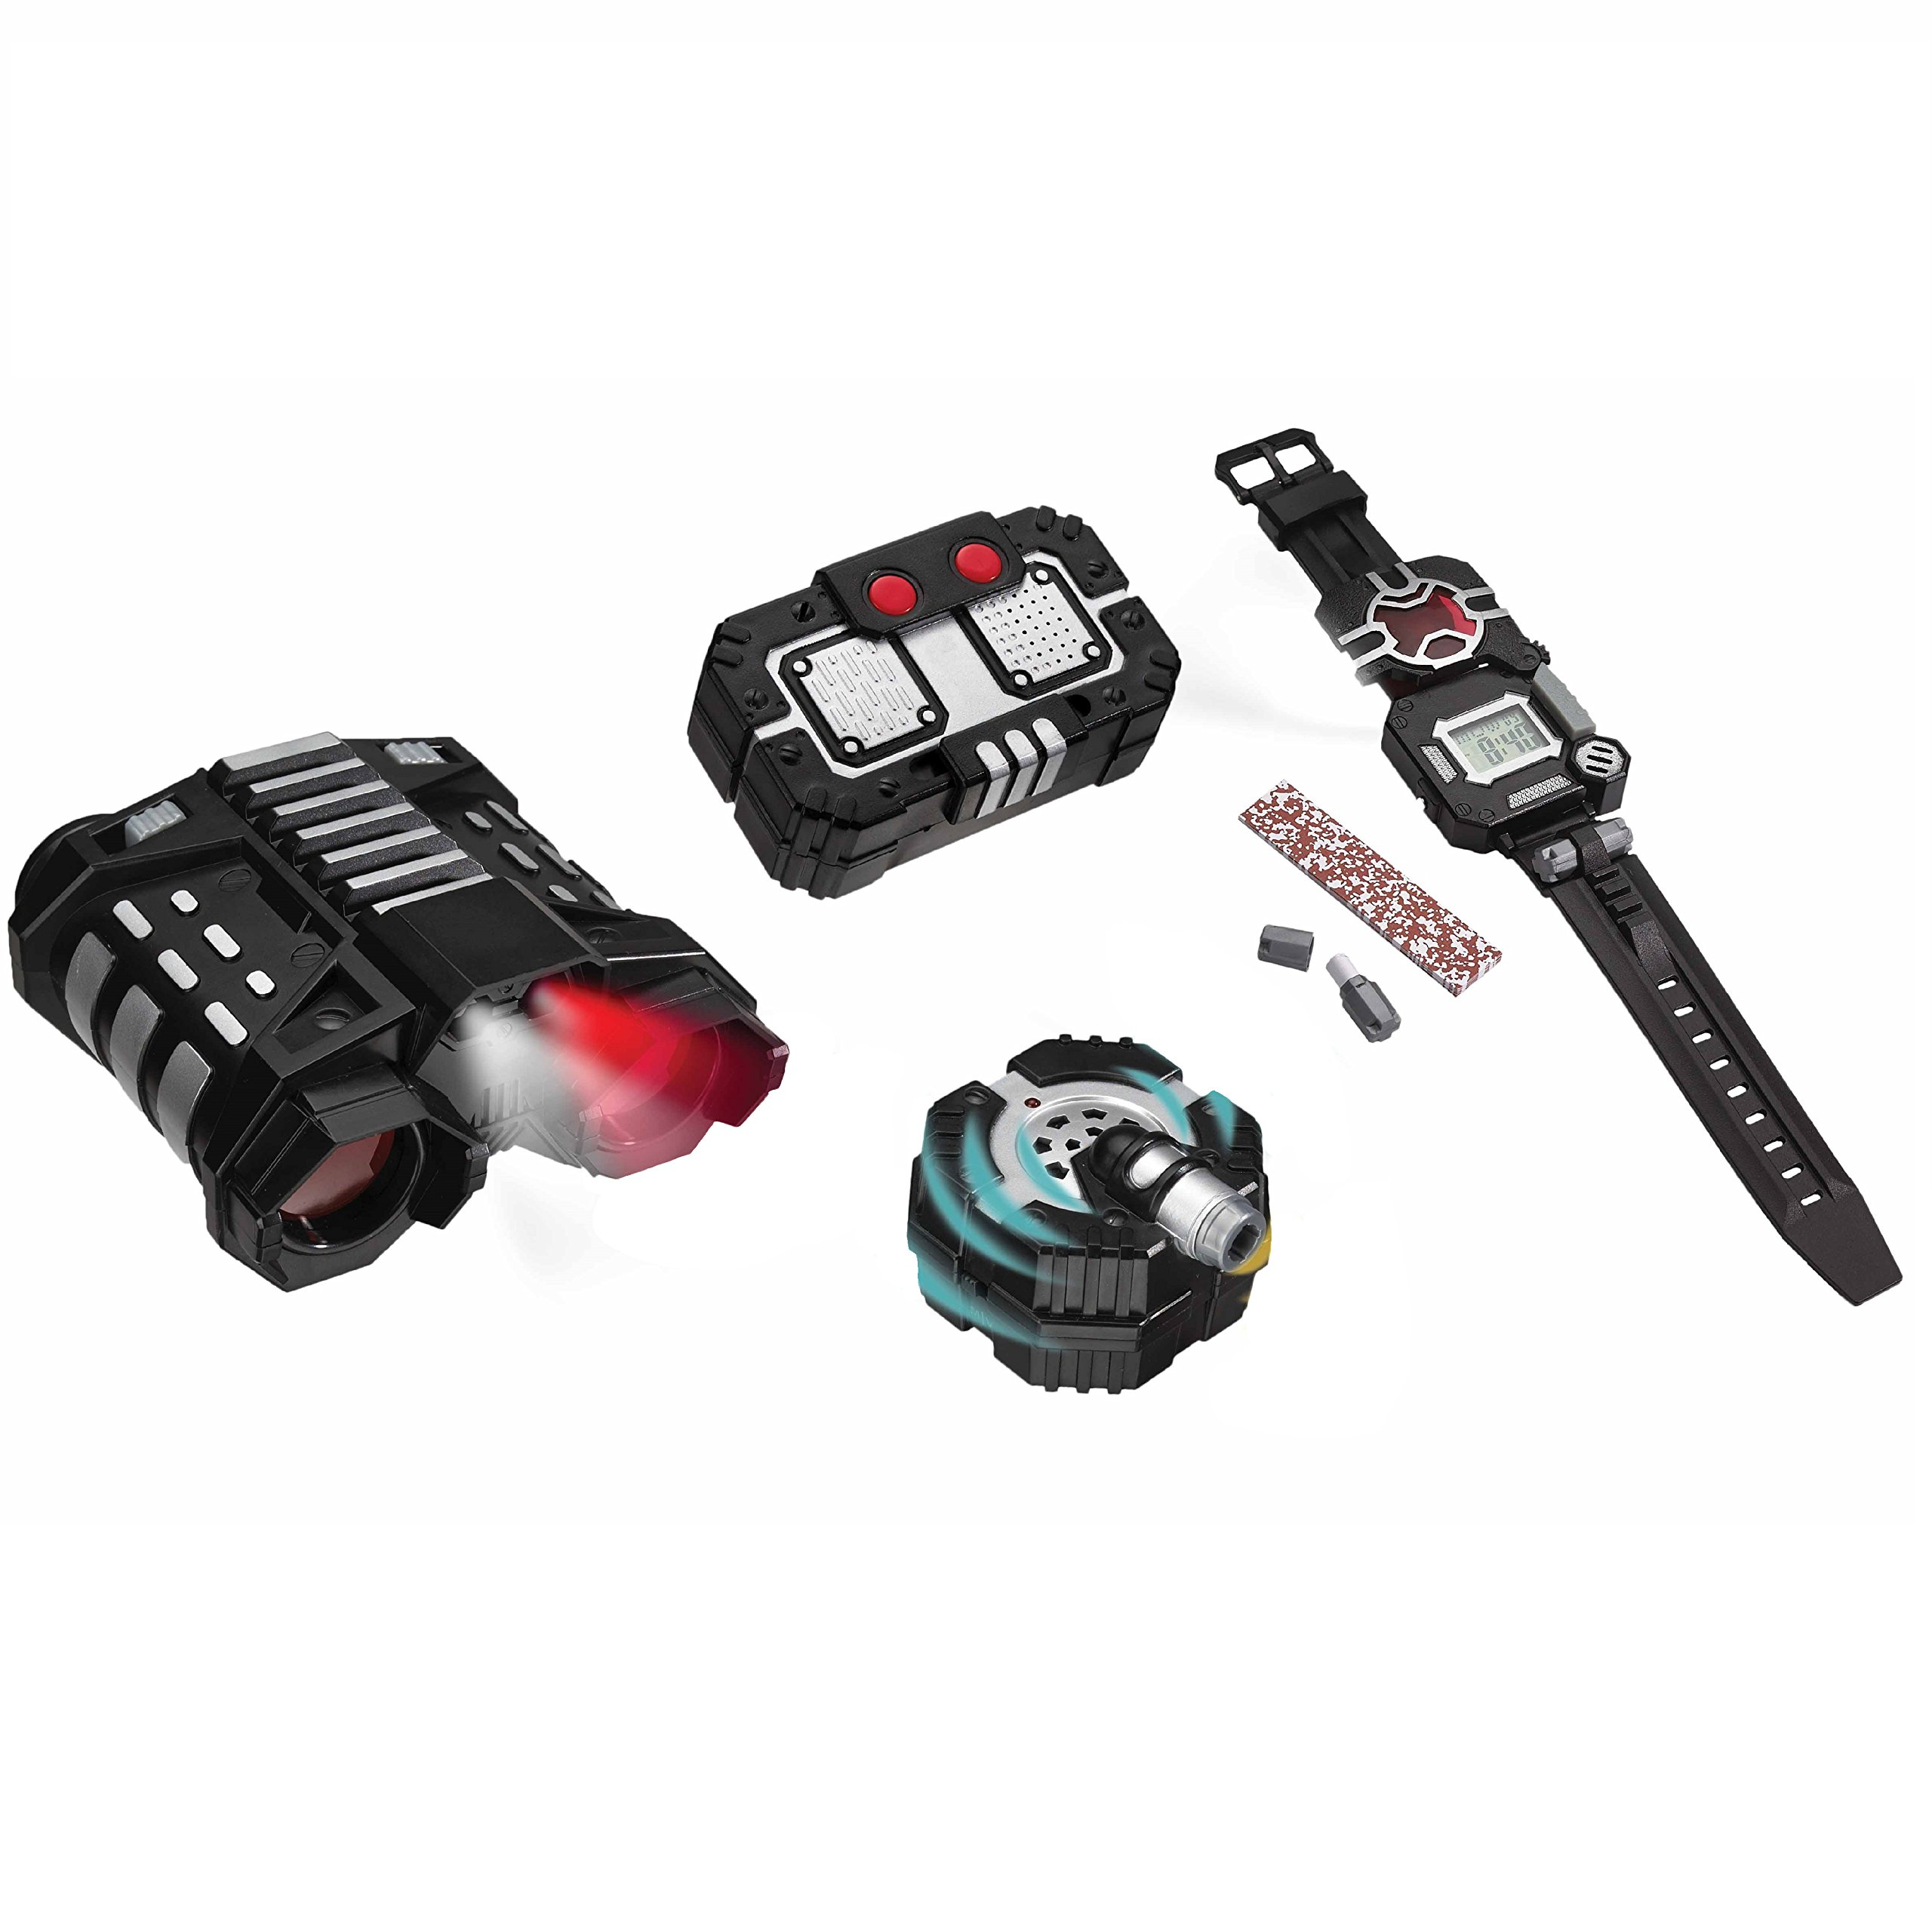 SpyX Recon Set - Includes Night Nocs + Voice Disguiser + Recon Watch + Motion Alarm. Perfect for Your Next Recon Mission and an Awesome Addition for Your spy Gear Collection! by SpyX